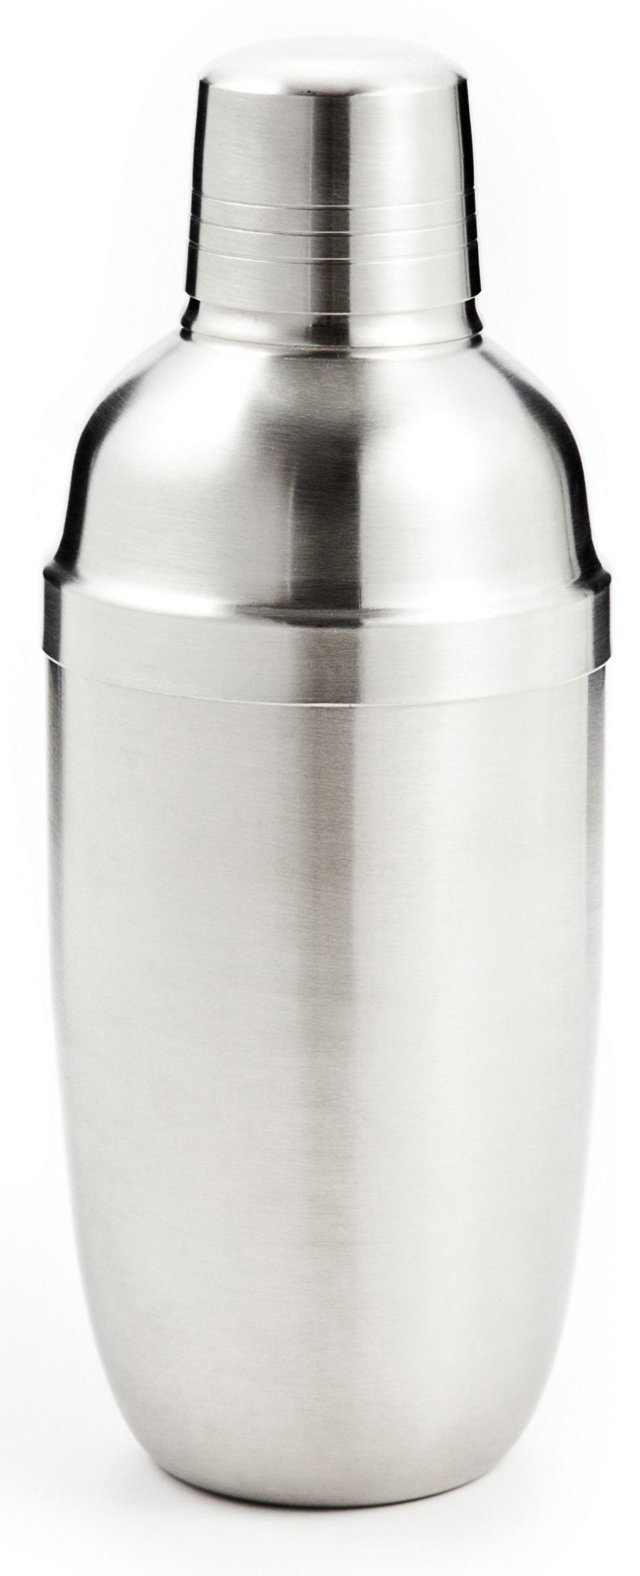 Stainless-Steel Cocktail Shaker